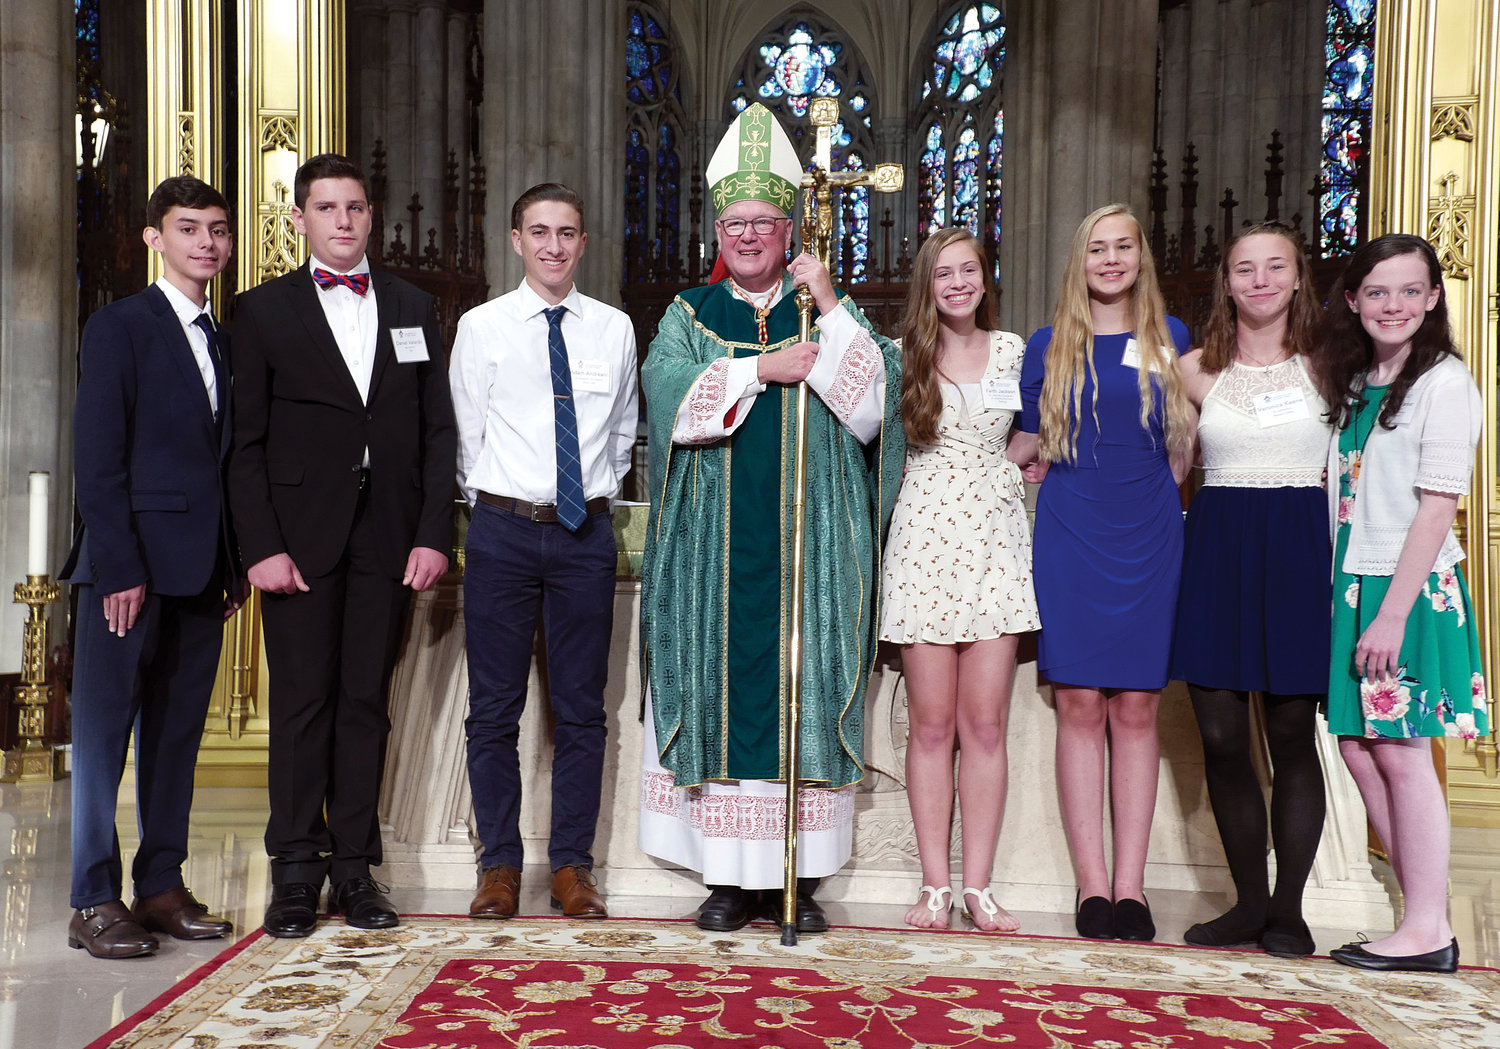 Cardinal Dolan greets the members of the Archdiocesan Youth Team after Mass at St. Patrick's Cathedral Sept. 22. The cardinal commissioned and blessed the team members. Standing from left are Giovanni Anthony Gauzza, Daniel Velardo, Adam Andreani, Cardinal Dolan, Faith Jackson, Katie Westin, Veronica Keene and Natalie Varker.